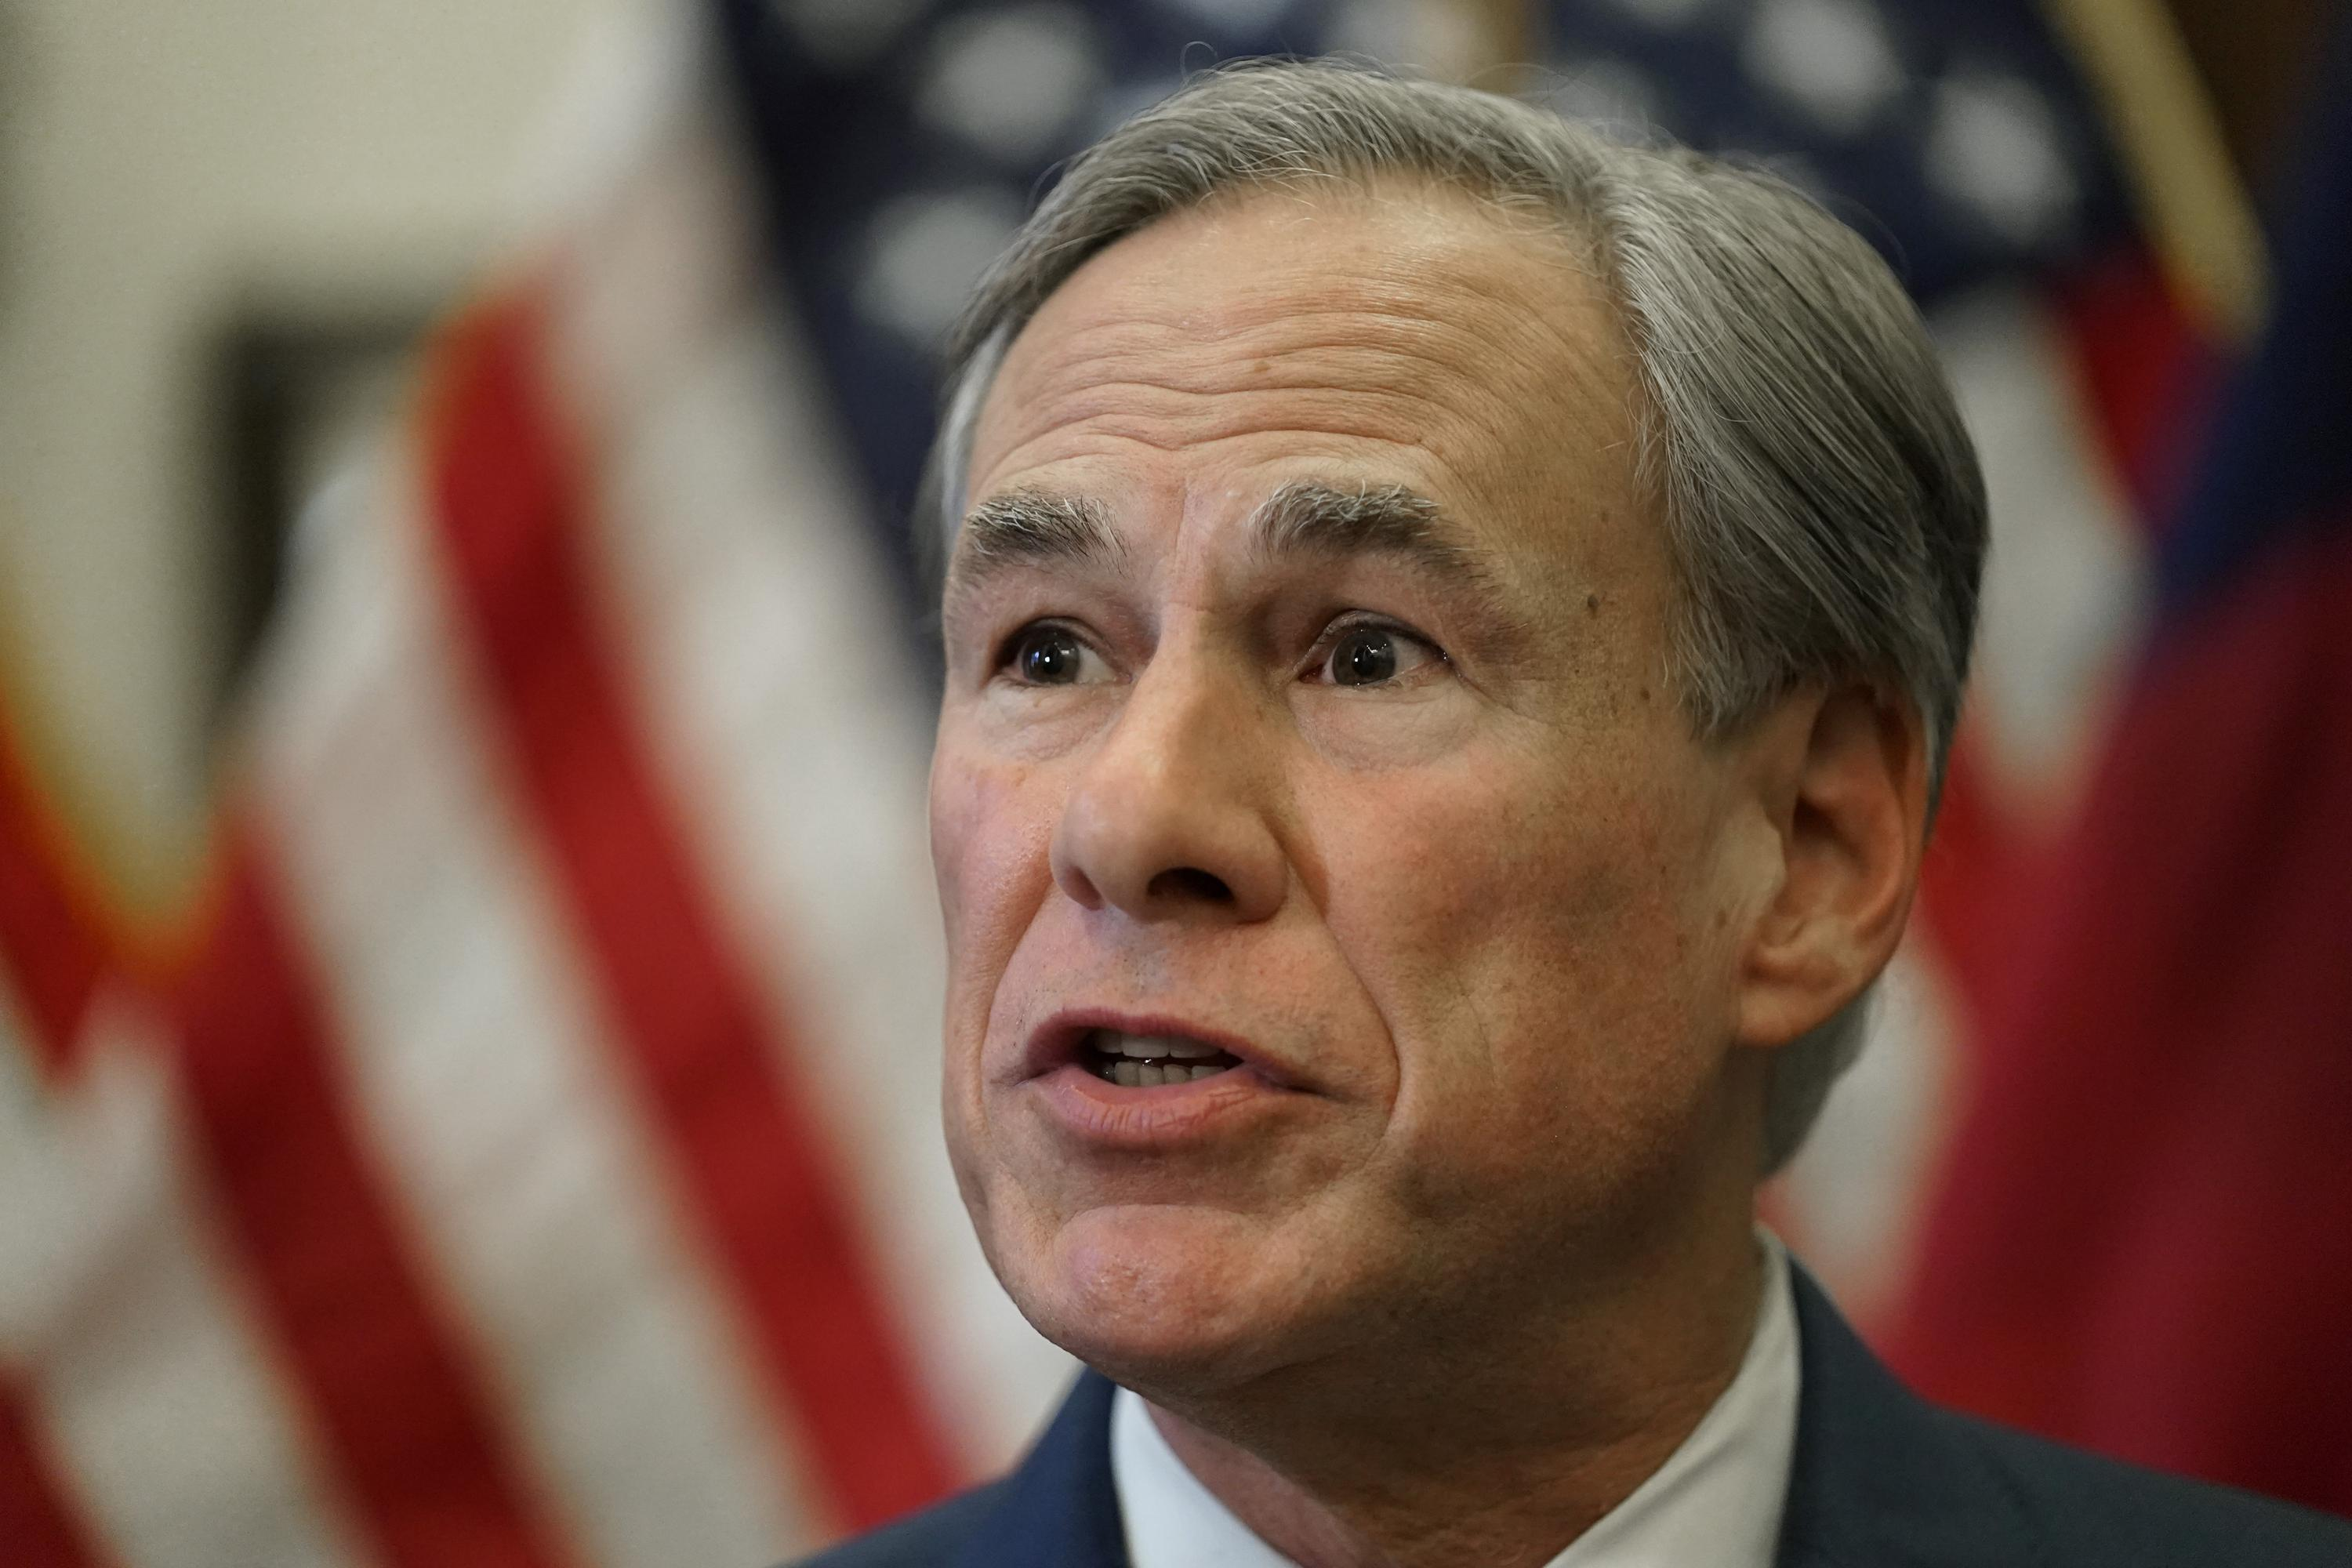 AUSTIN, Texas (AP) — Texas Gov. Greg Abbott tested positive for COVID-19 on Tuesday, according to his office, who said the Republican is in good hea